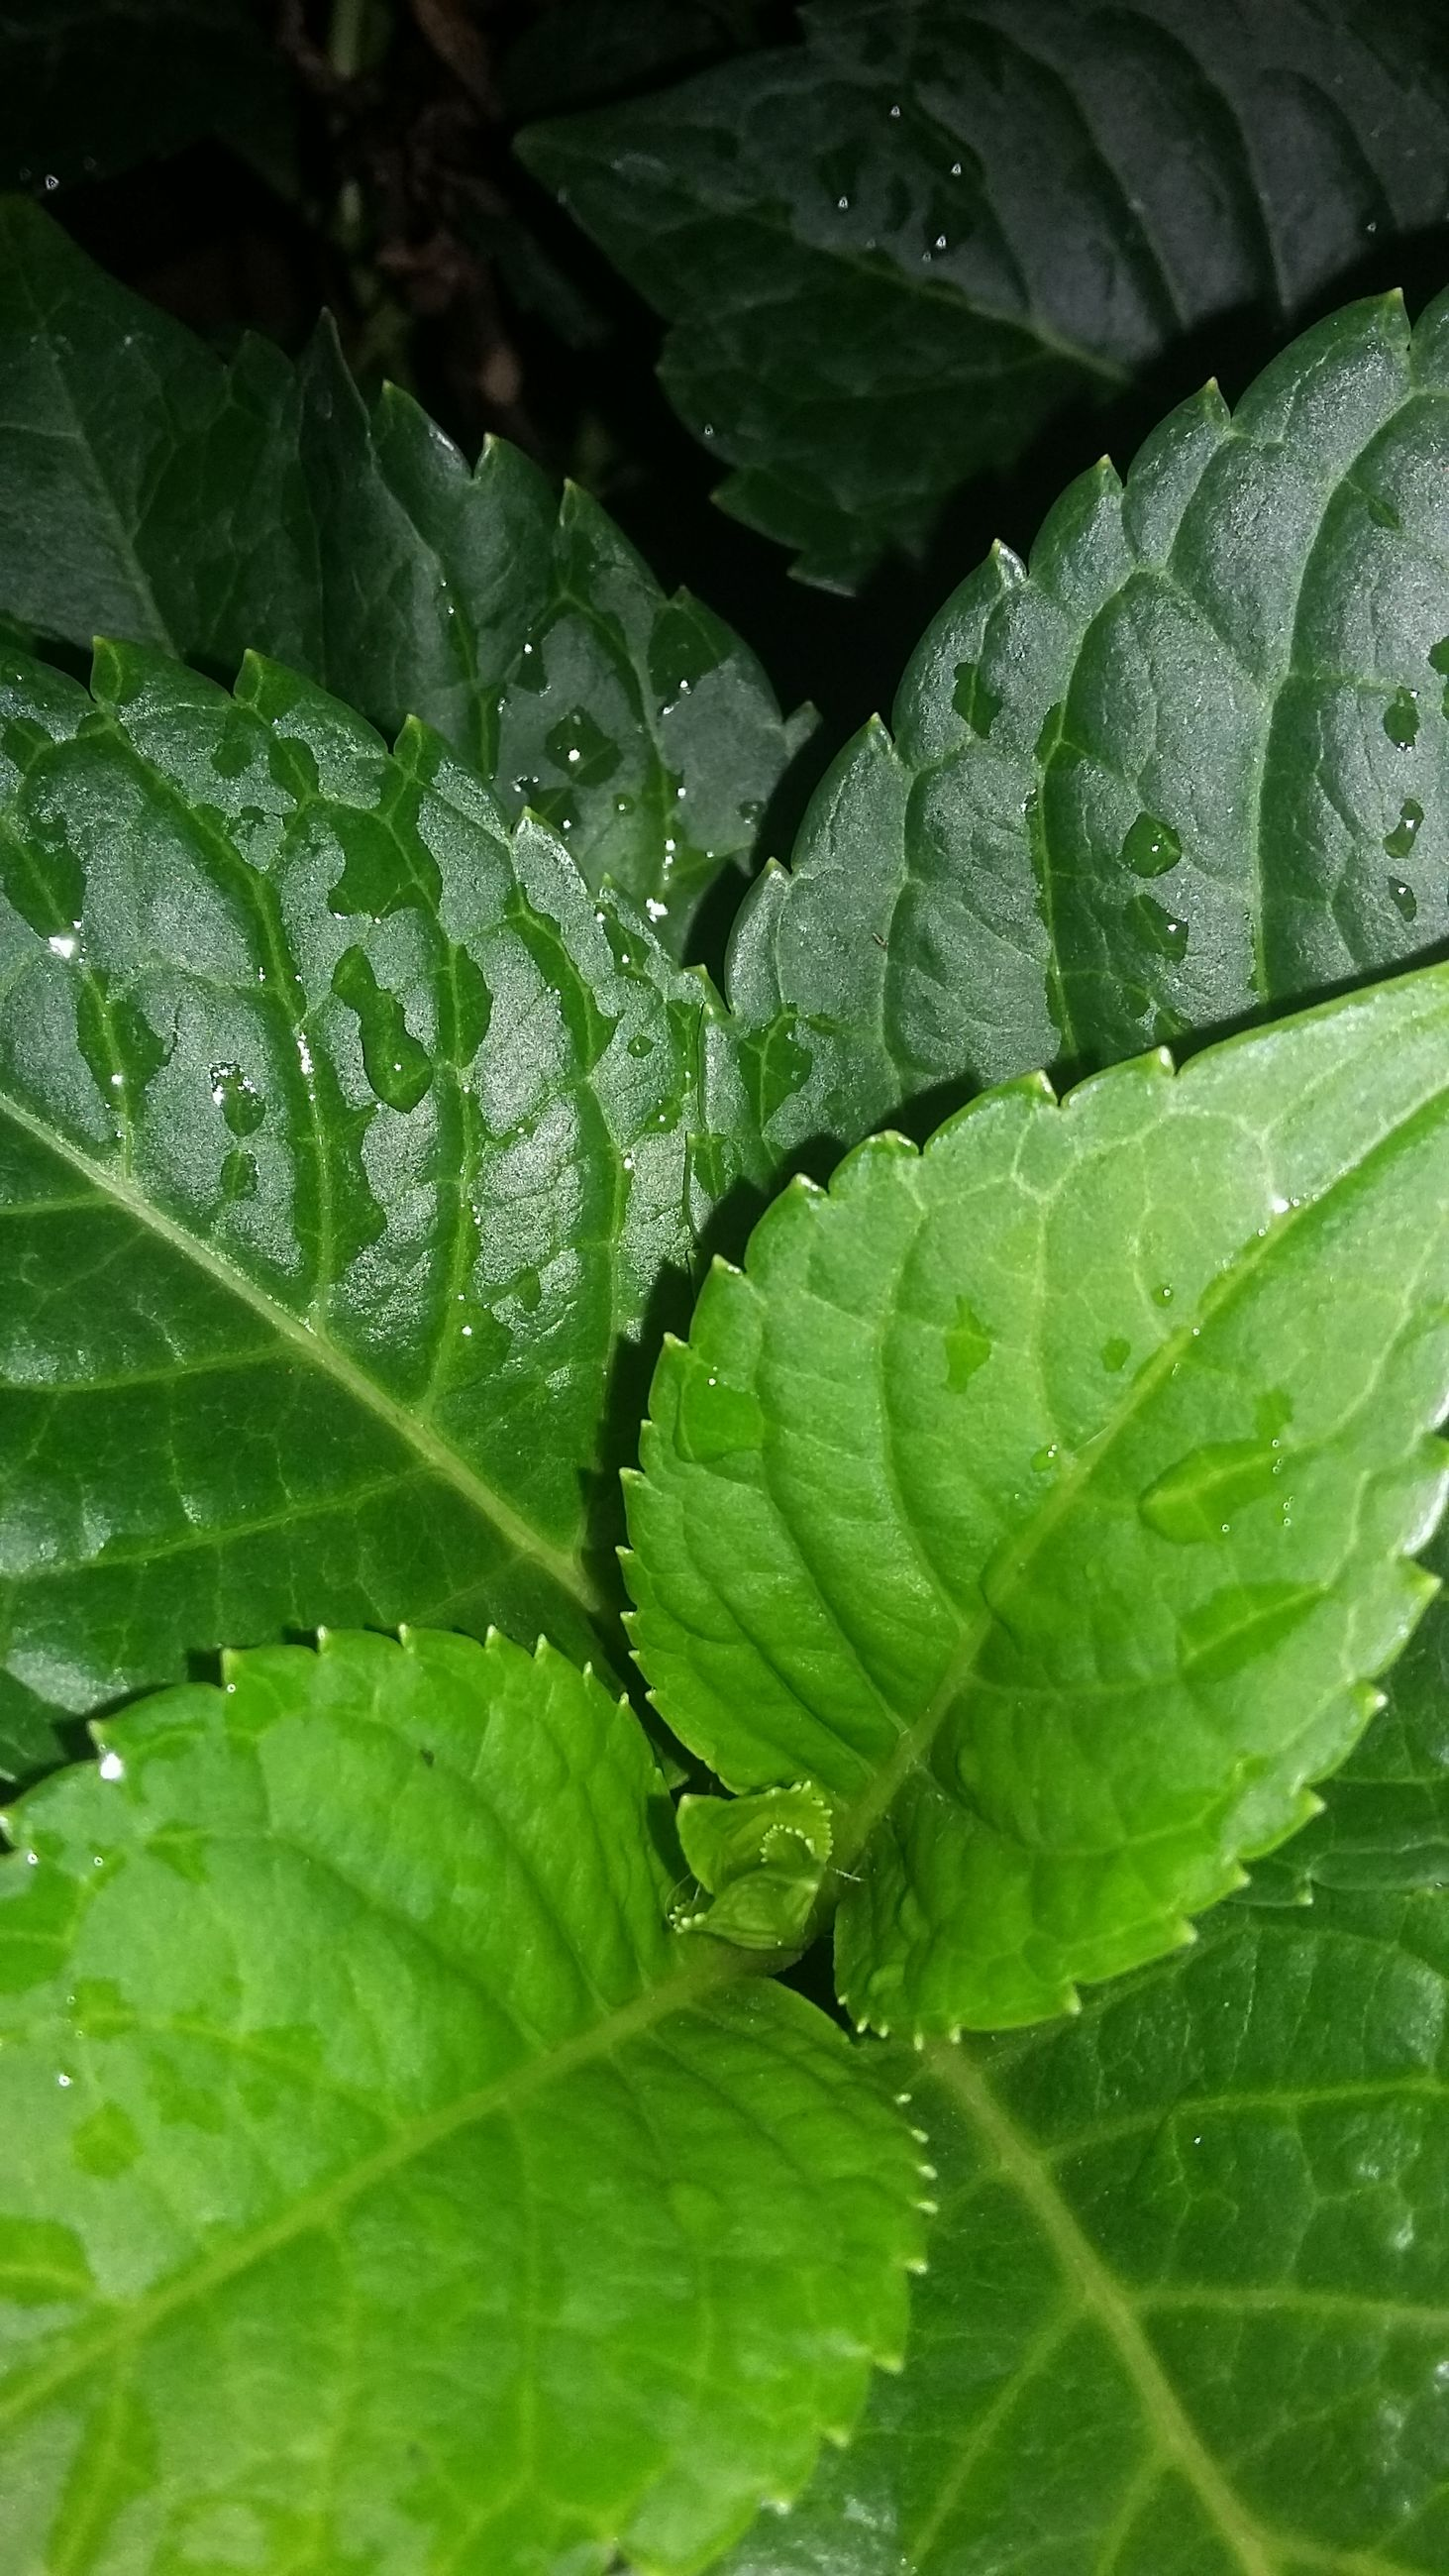 leaf, green color, growth, leaf vein, close-up, freshness, plant, nature, full frame, natural pattern, beauty in nature, backgrounds, drop, leaves, wet, green, high angle view, water, no people, fragility